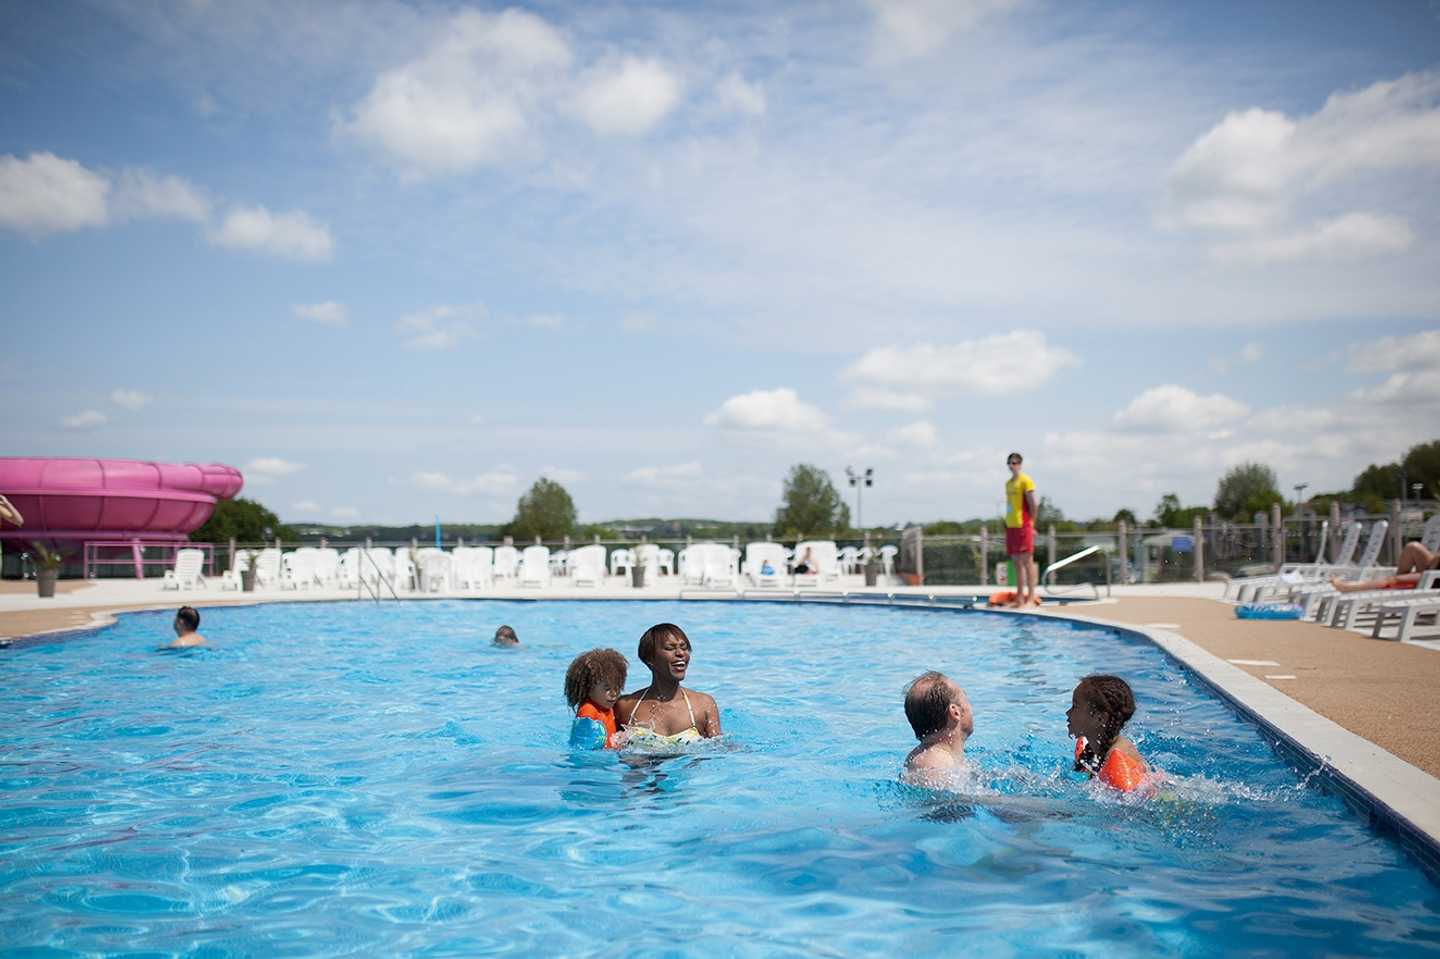 Guests playing games in the outdoor pool